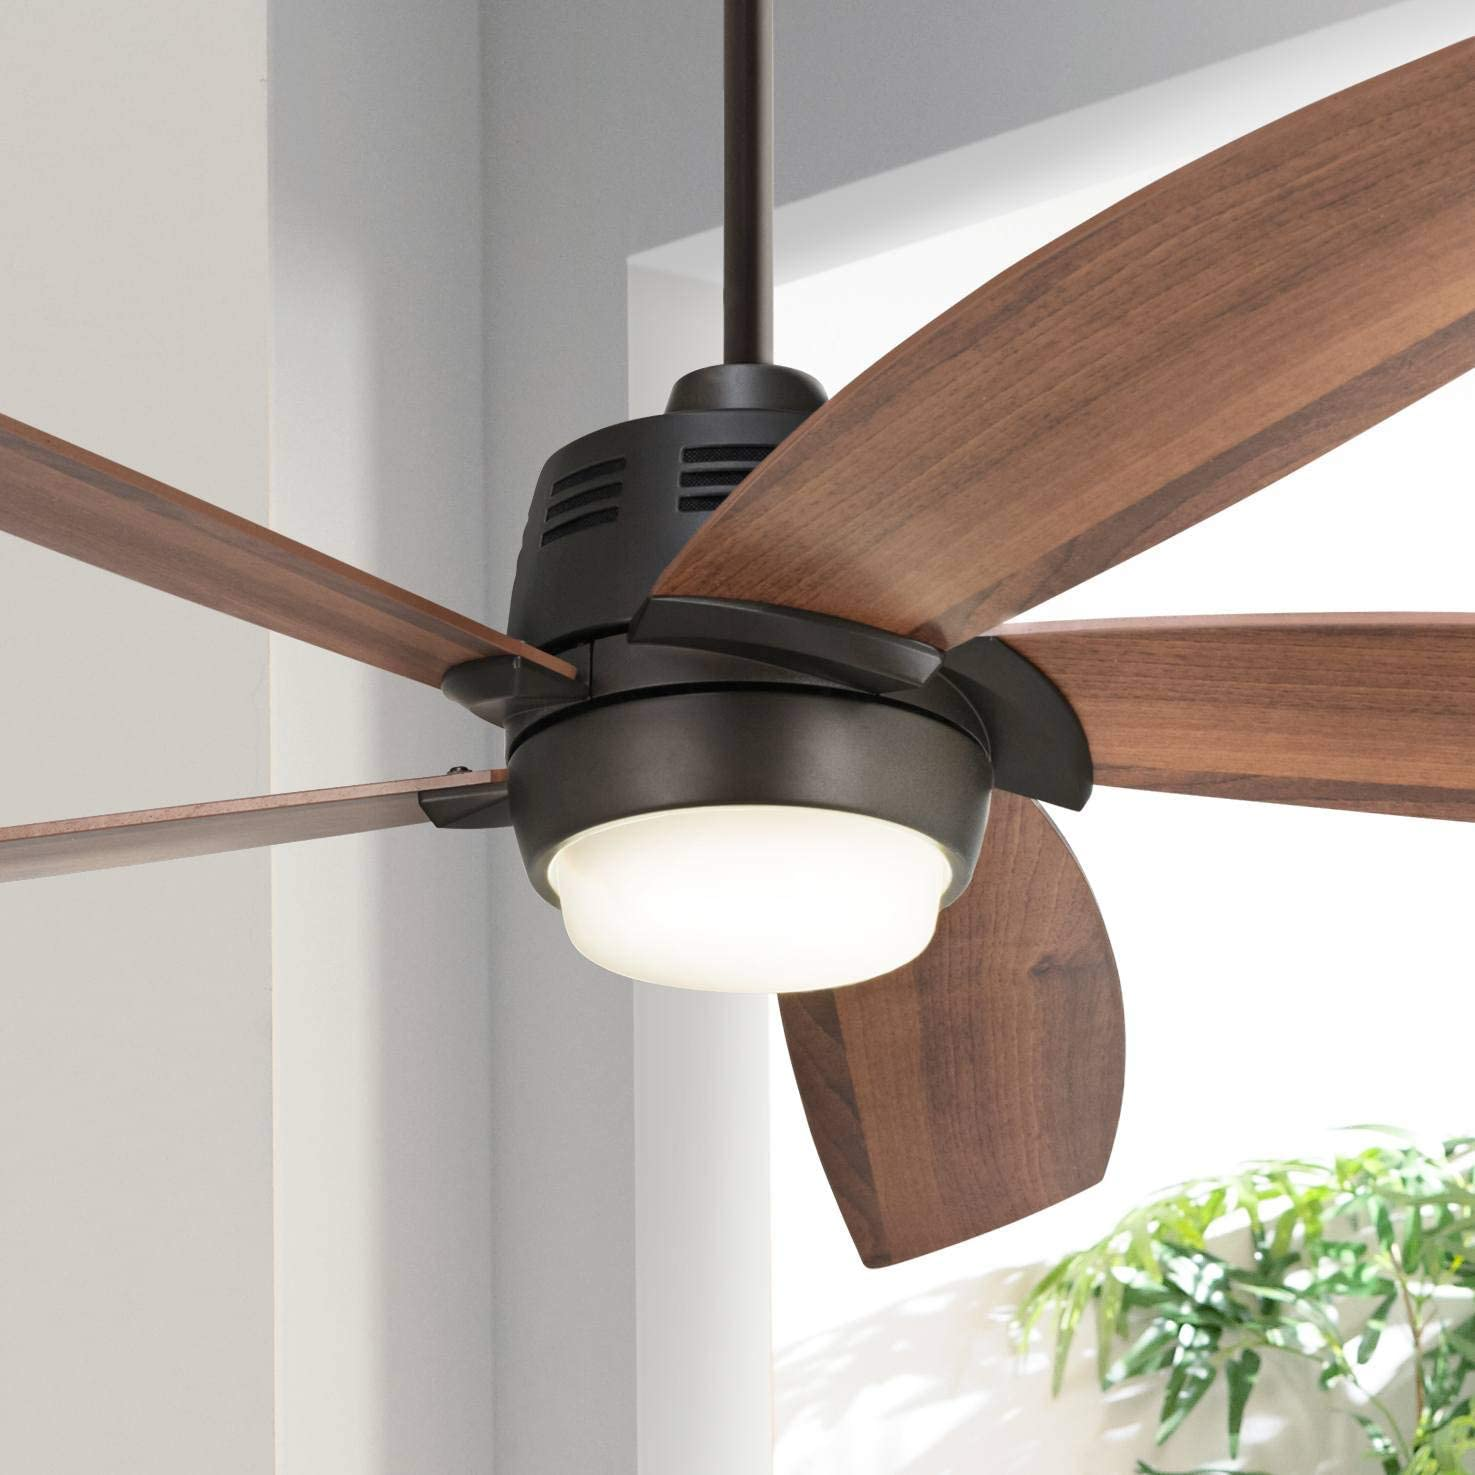 56″ Casa Ecanto8482 Oil-Rubbed Bronze LED Ceiling Fan